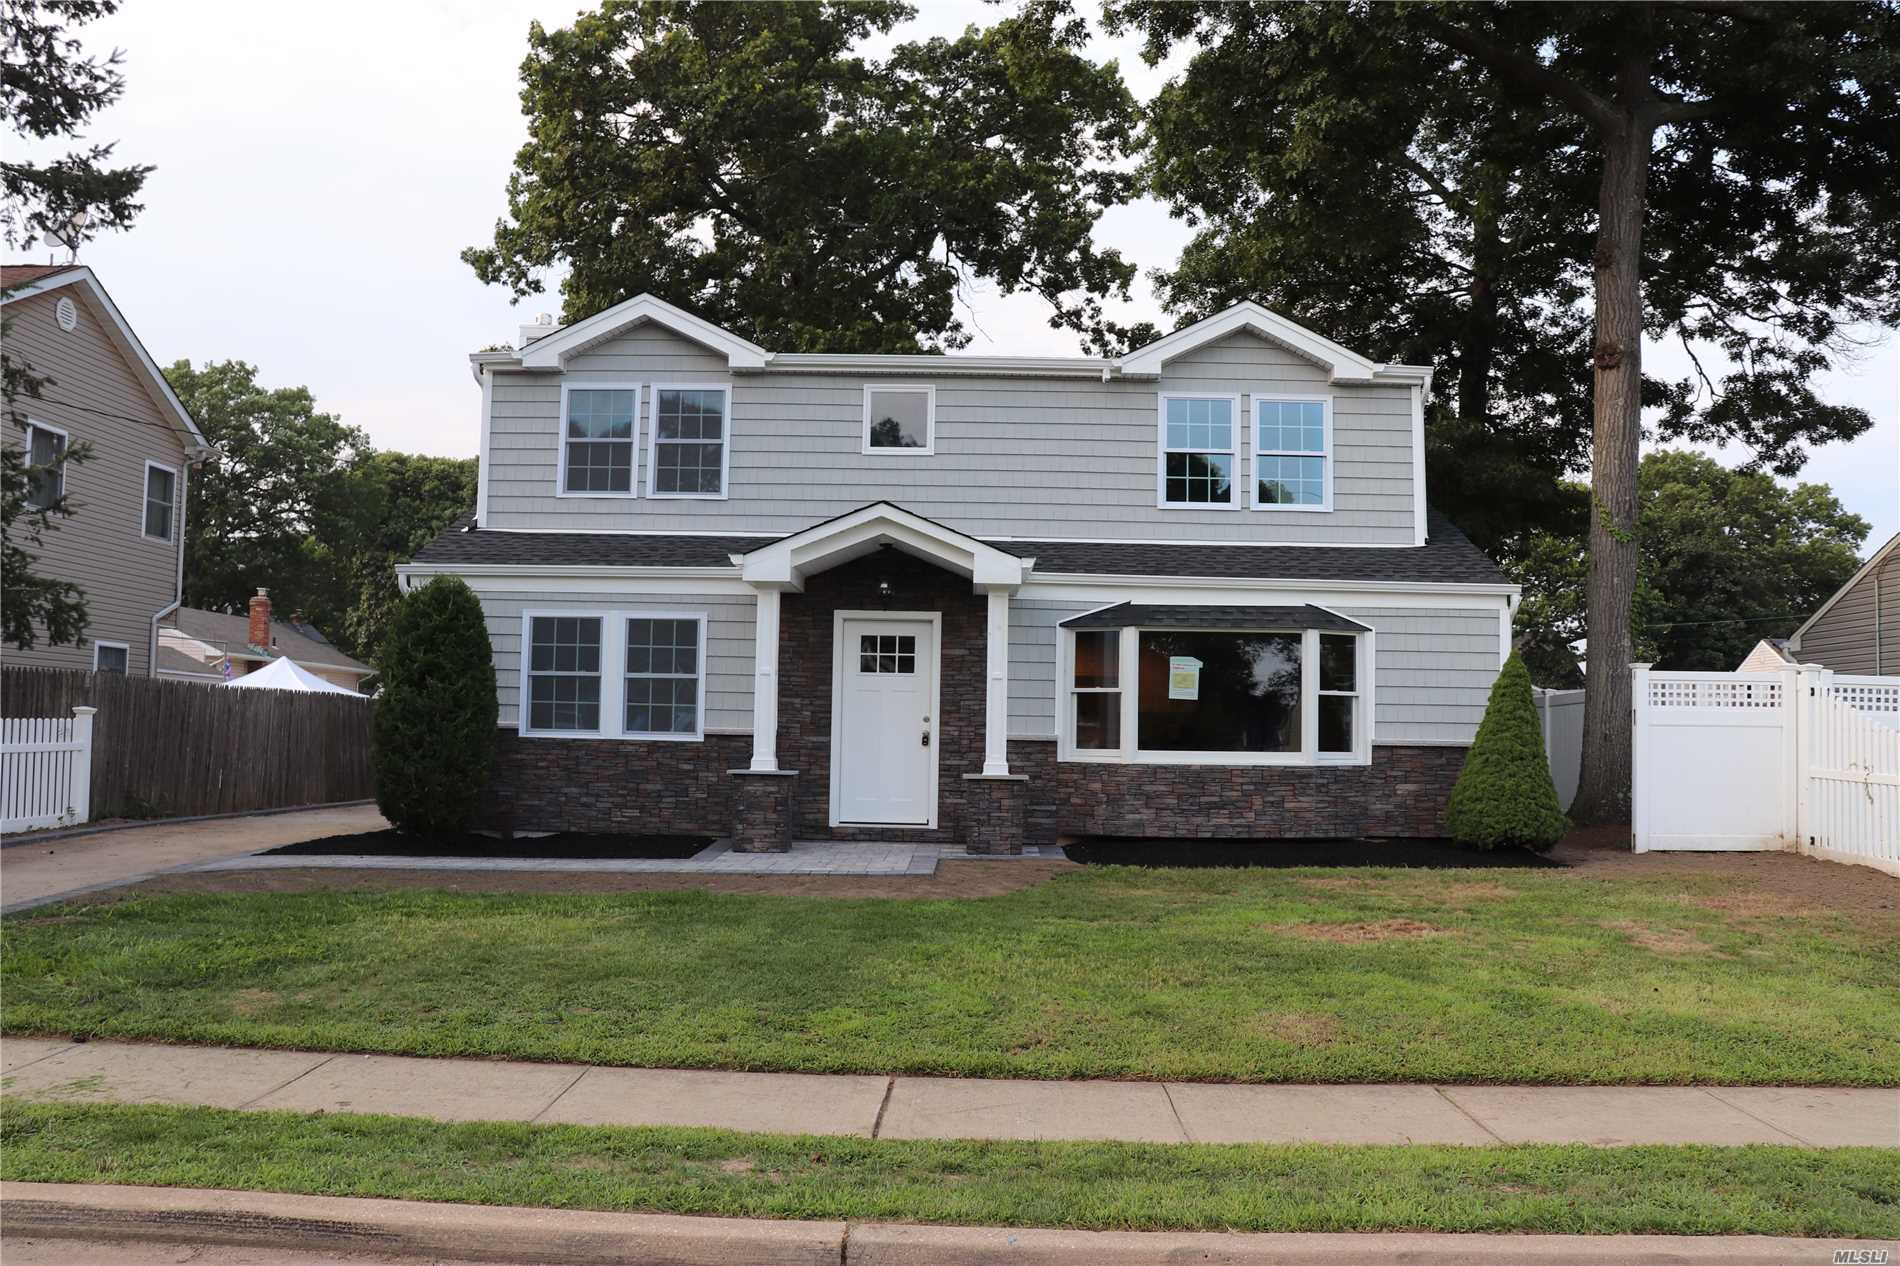 Custom Renovated Colonial In The Heart Of Massapequa Park. This Home Features Large Open Floor Plan , Eik, Formal Dinning Rm, Living Rm. Family Rm/5th Bedroom, Master Ensuite, 3 Add'l Bedrooms , 3 Full Baths. Completely Gutted And Renovated All Permits Filed , Anderson Windows , New Roof , New Siding , Cac . Much Much More , Walk To Railroad & Town . Wont Last Must See !!!!!!Note Still Not 100% Finished , Driveway And More To Be Done